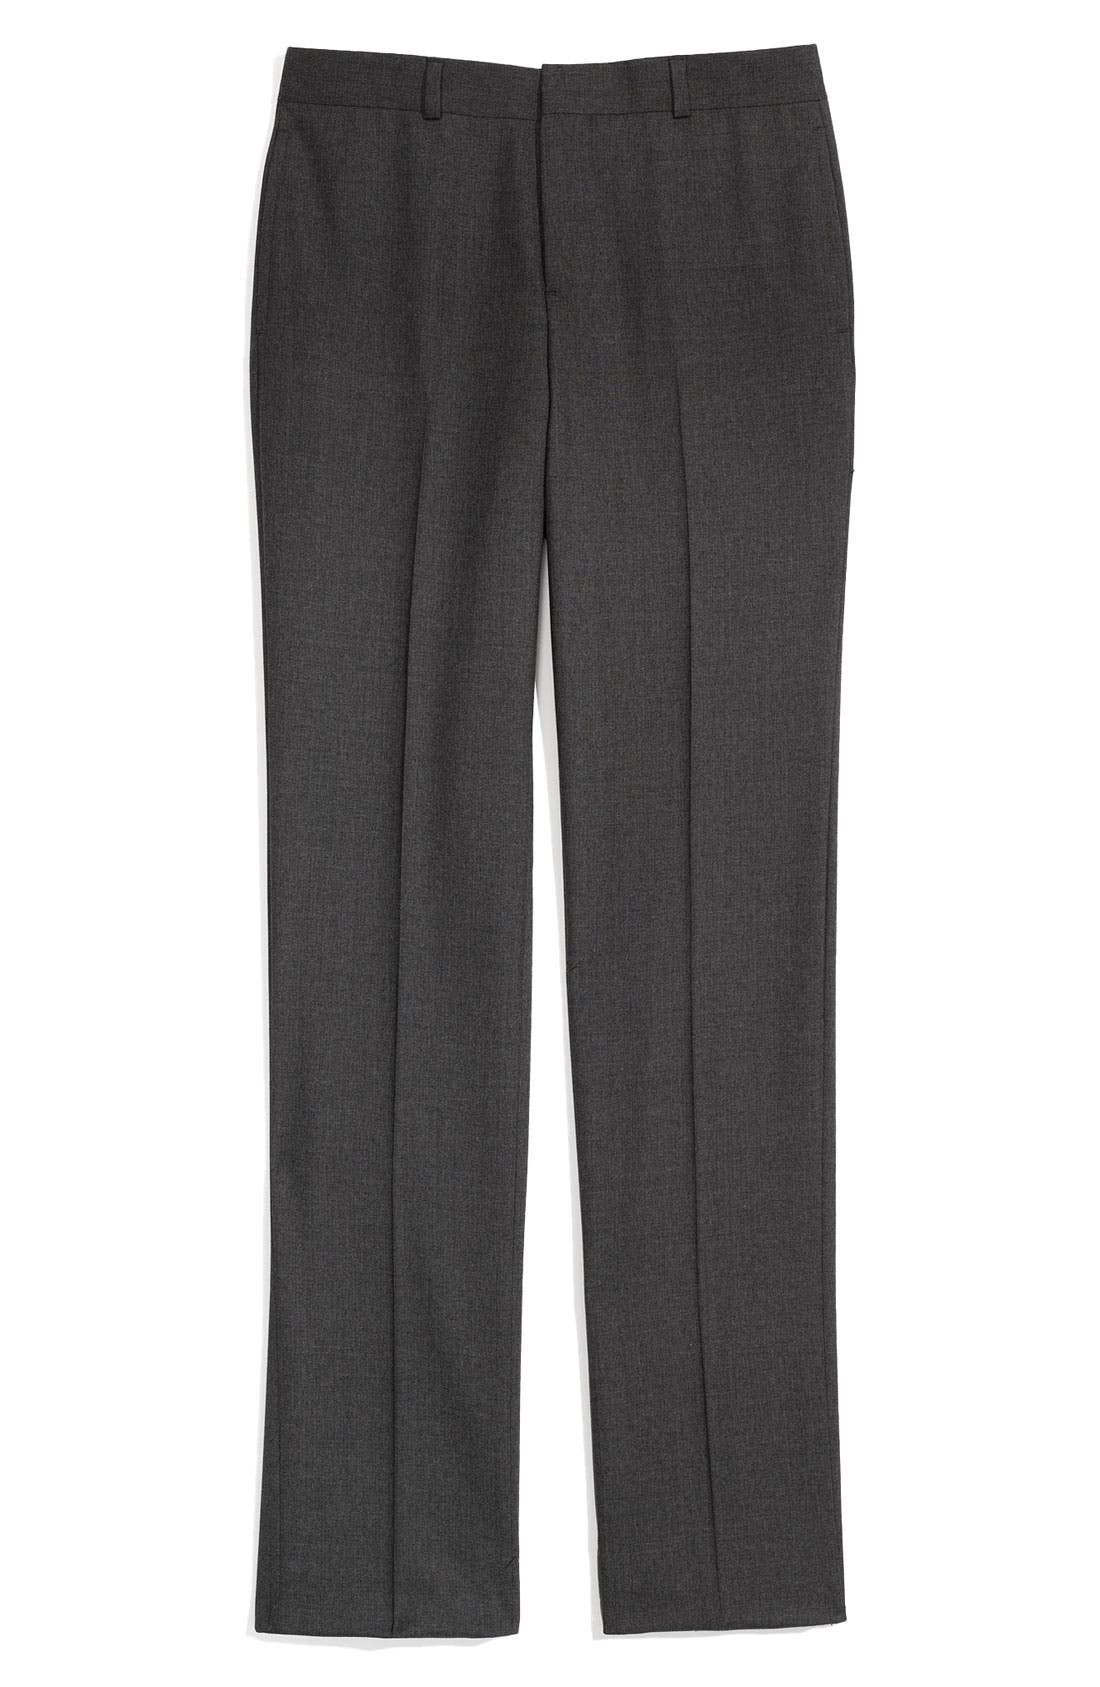 Alternate Image 1 Selected - Brooks Brothers Flat Front Trousers (Big Boys)